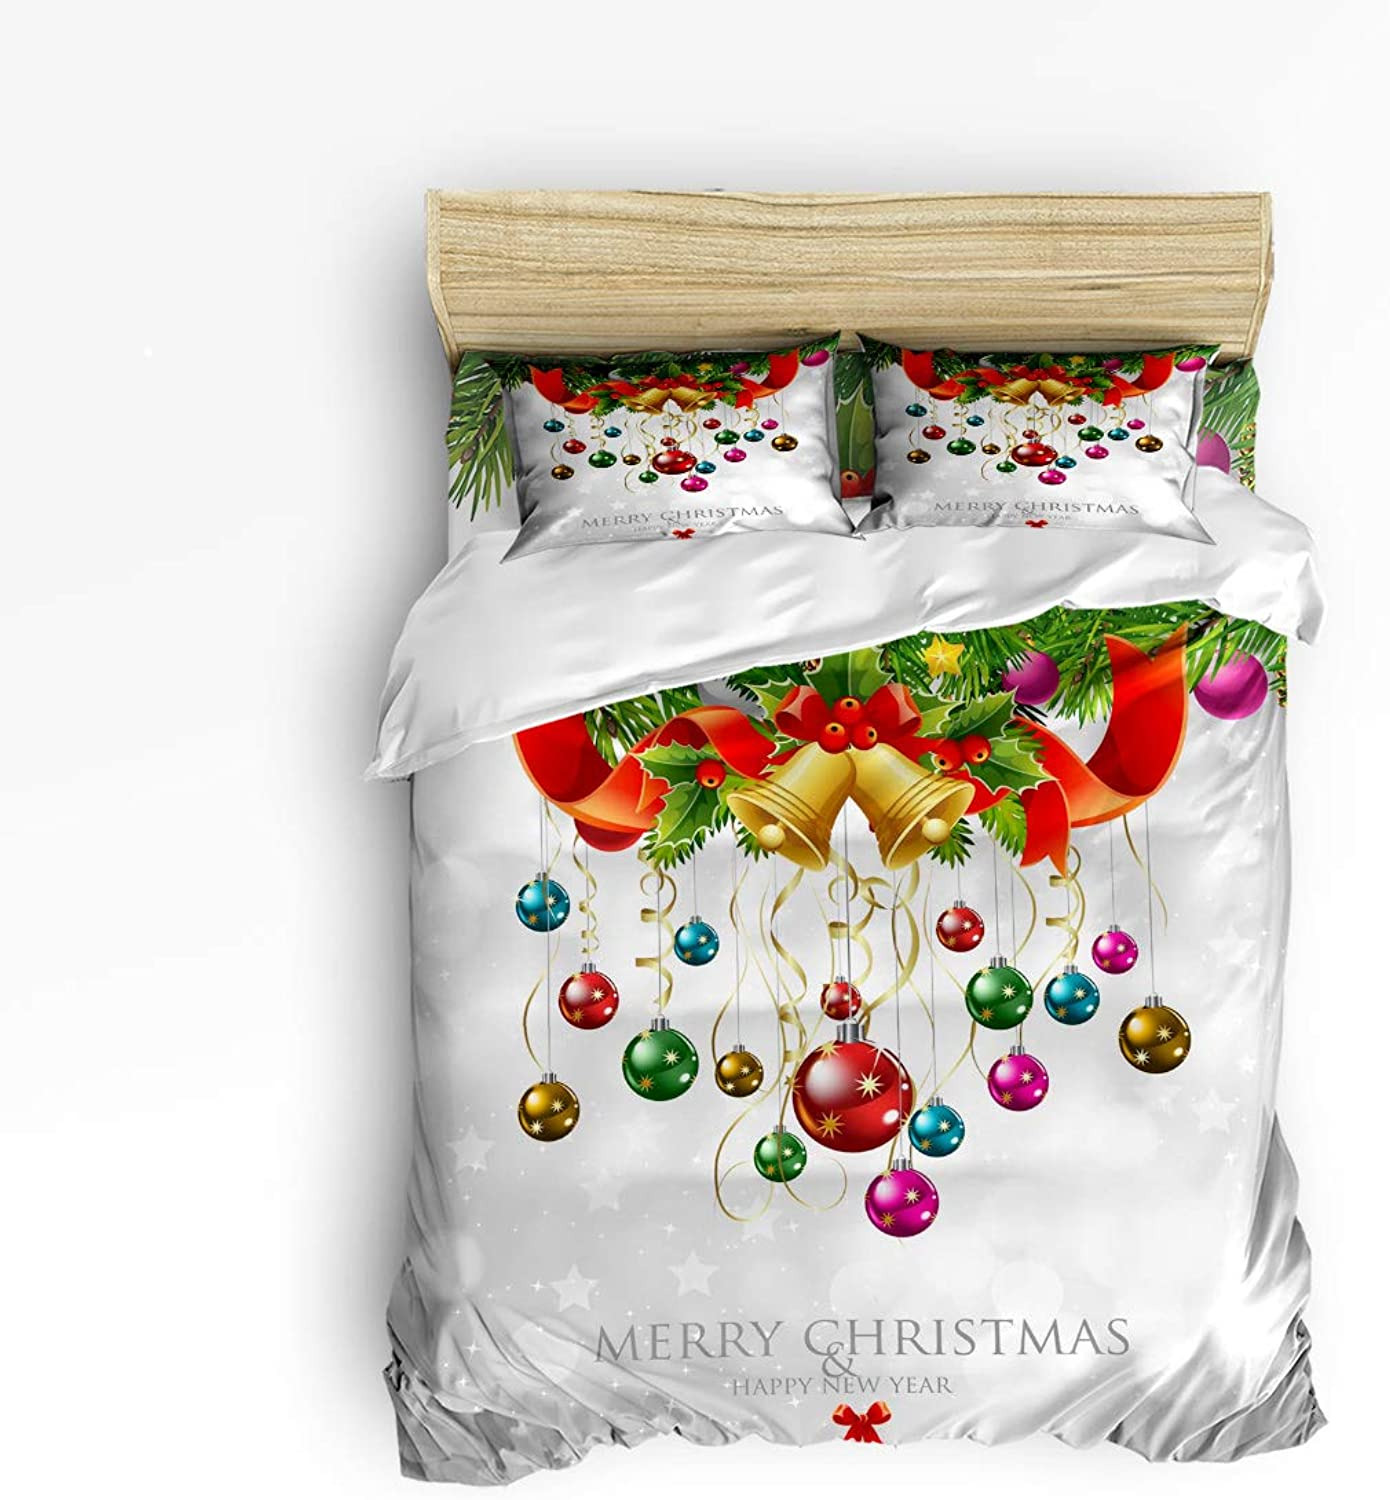 LEO BON Duvet Cover Set Twin Size Merry Christmas,Jingling Bell Floral Duvet Cover and Pillow Shams Bed Set